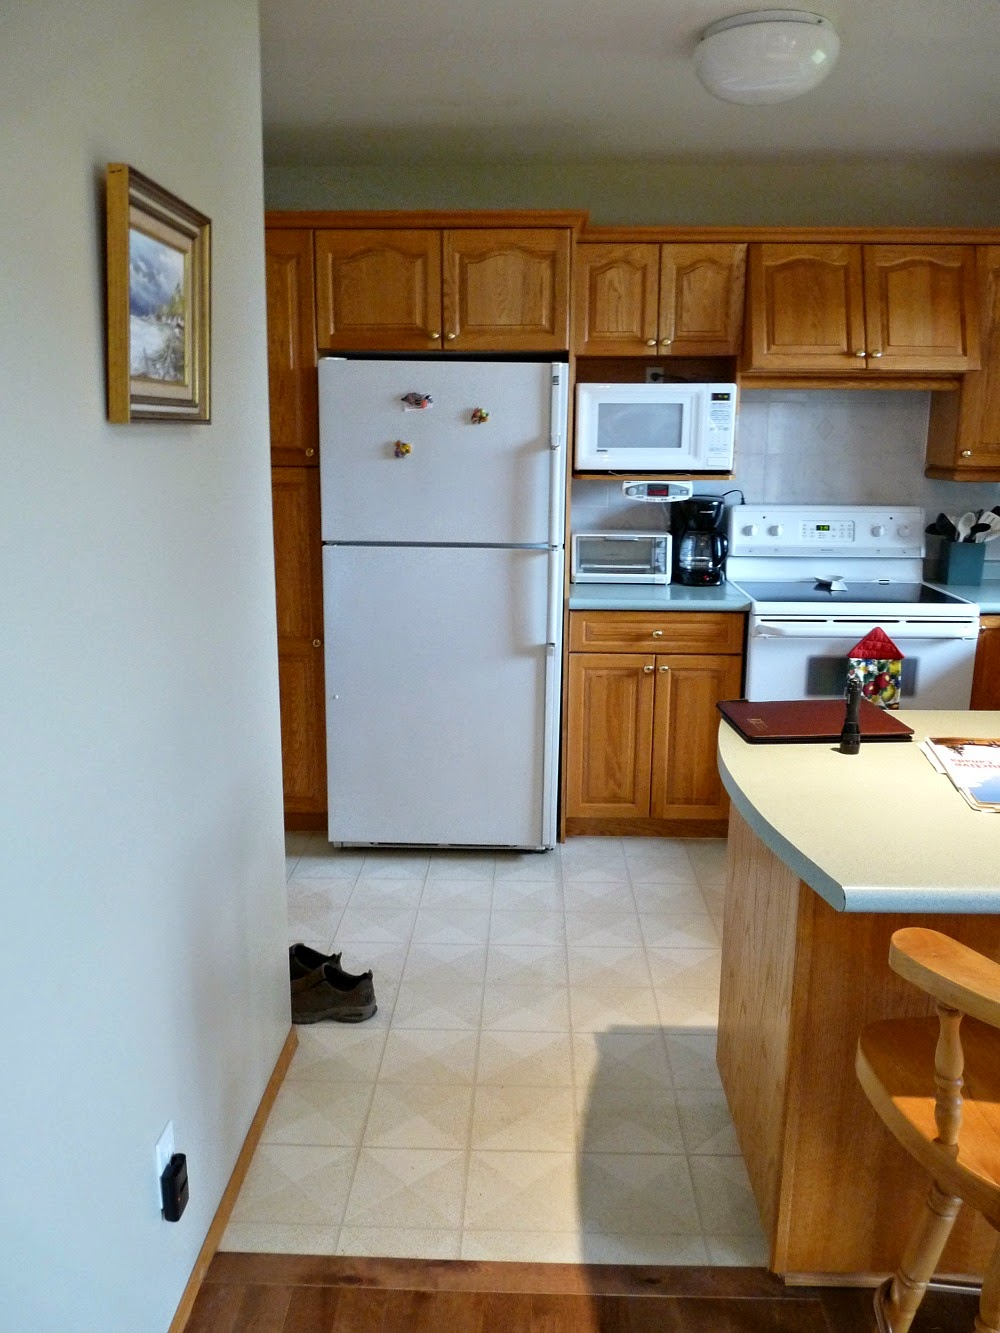 http://1.bp.blogspot.com/-qmzb9WrkpfQ/U1qGkh2D9bI/AAAAAAAAUxQ/tVWxjkbE7IA/s1600/Before_Kitchen+Fridge.jpg